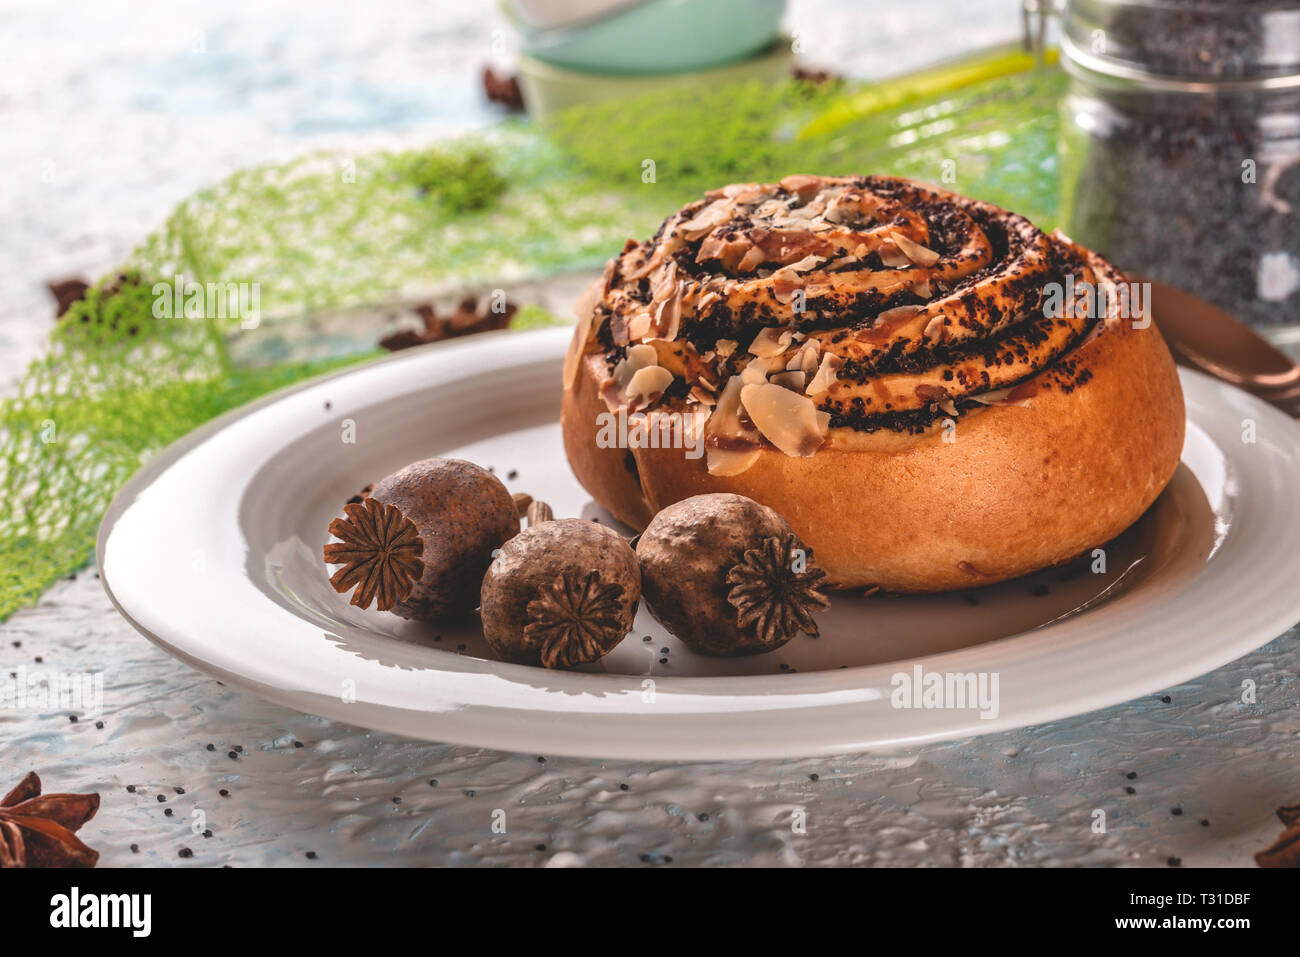 Horizontal photo of sweet rolled bun stuffed by poppy. Bun is on white plate with few poppyheads. Glass gar with poppy seeds and stacked small bowls a - Stock Image